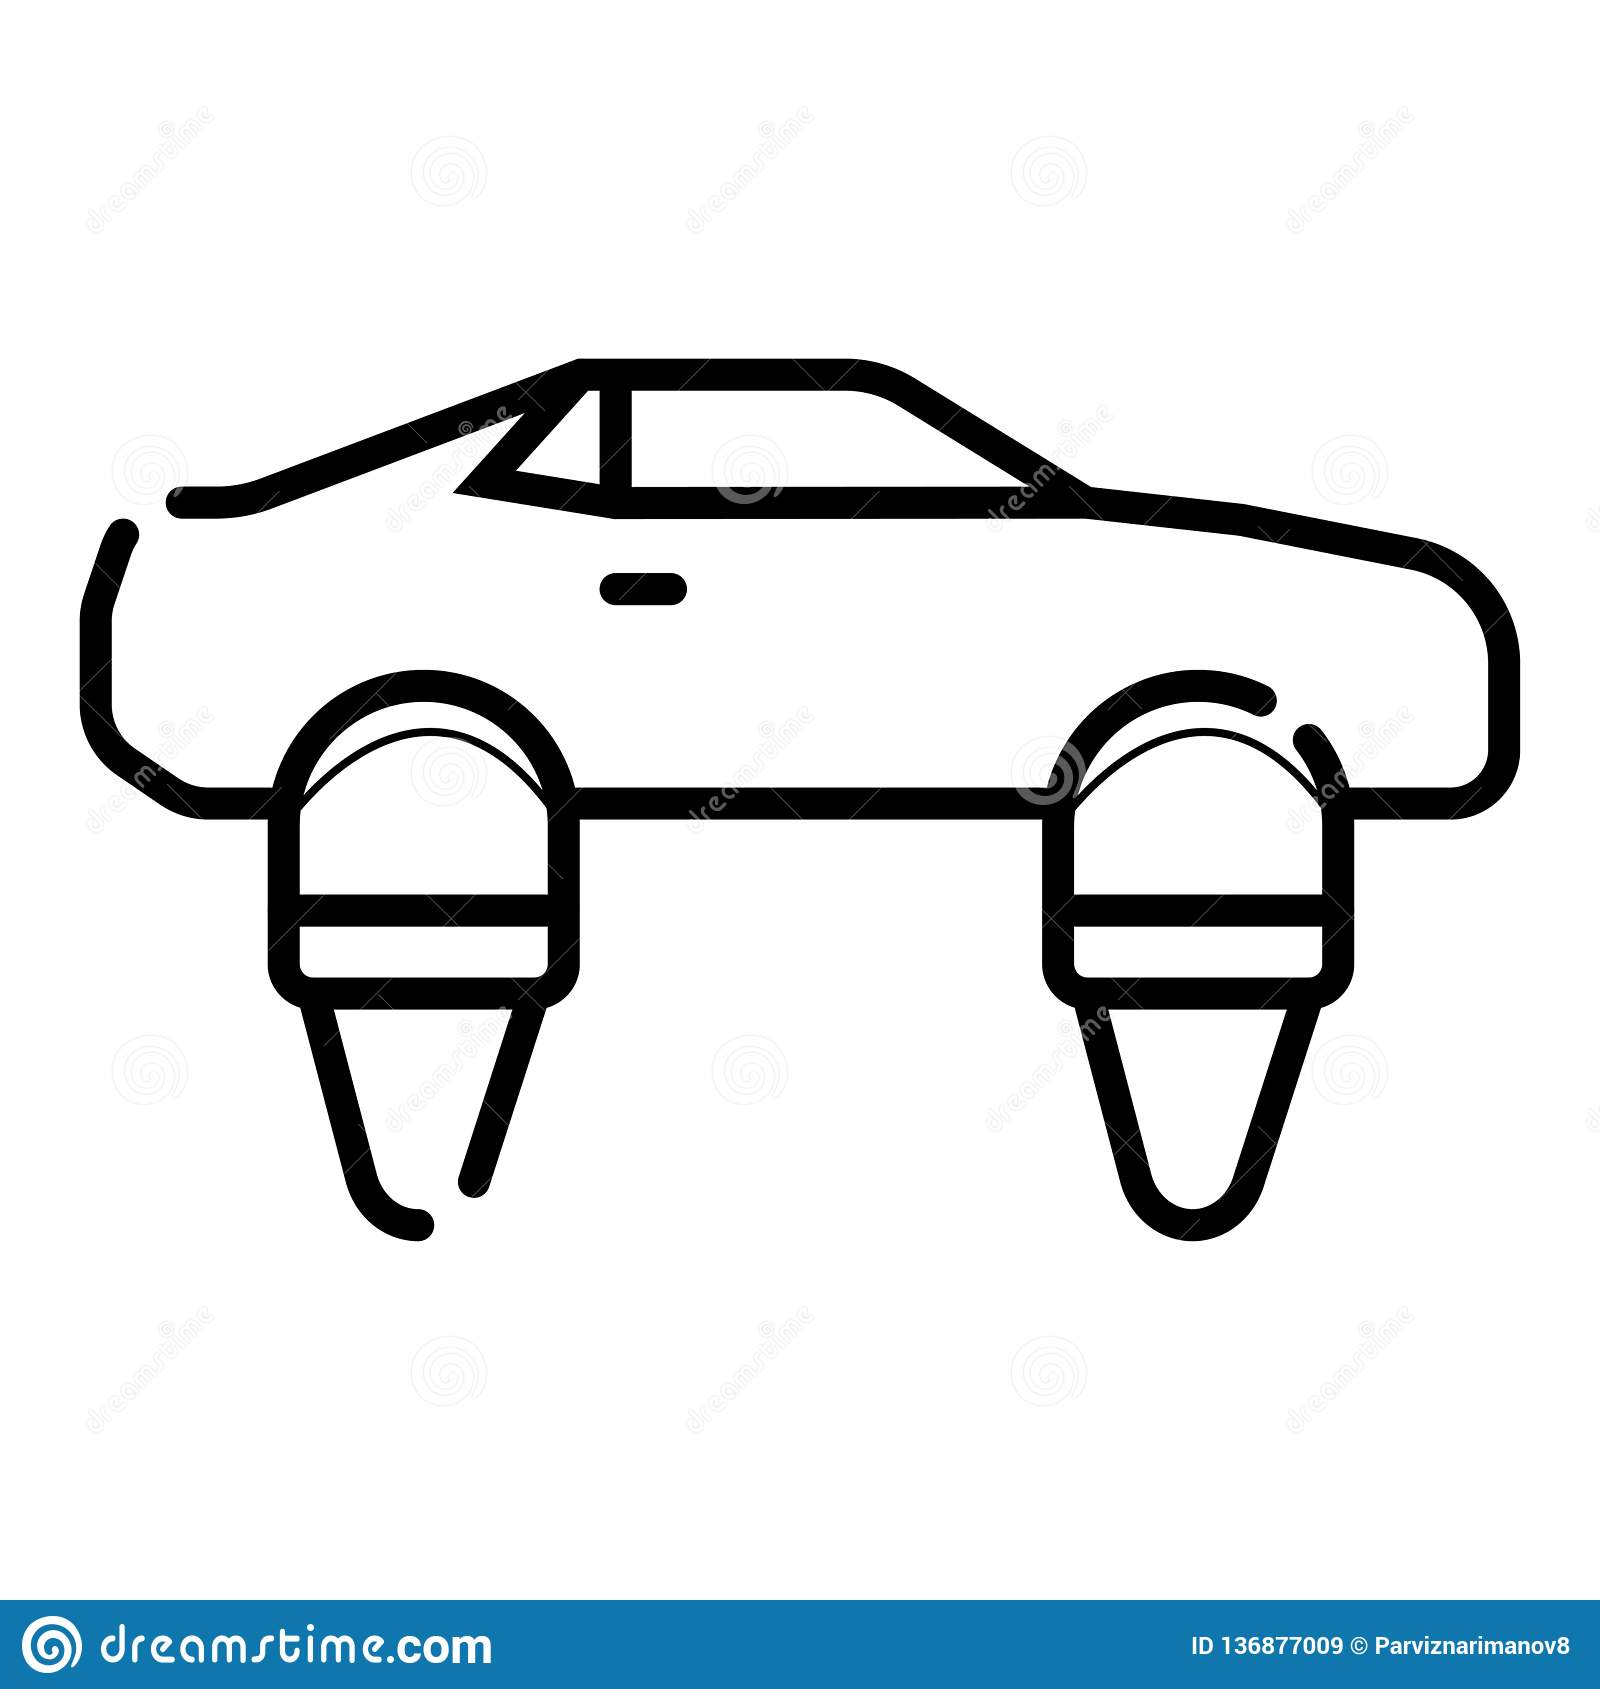 Symbol of Personal Hovercar Thin line Icon of Future Technology. Stroke Pictogram Graphic for Web Design. Quality Outline Vector